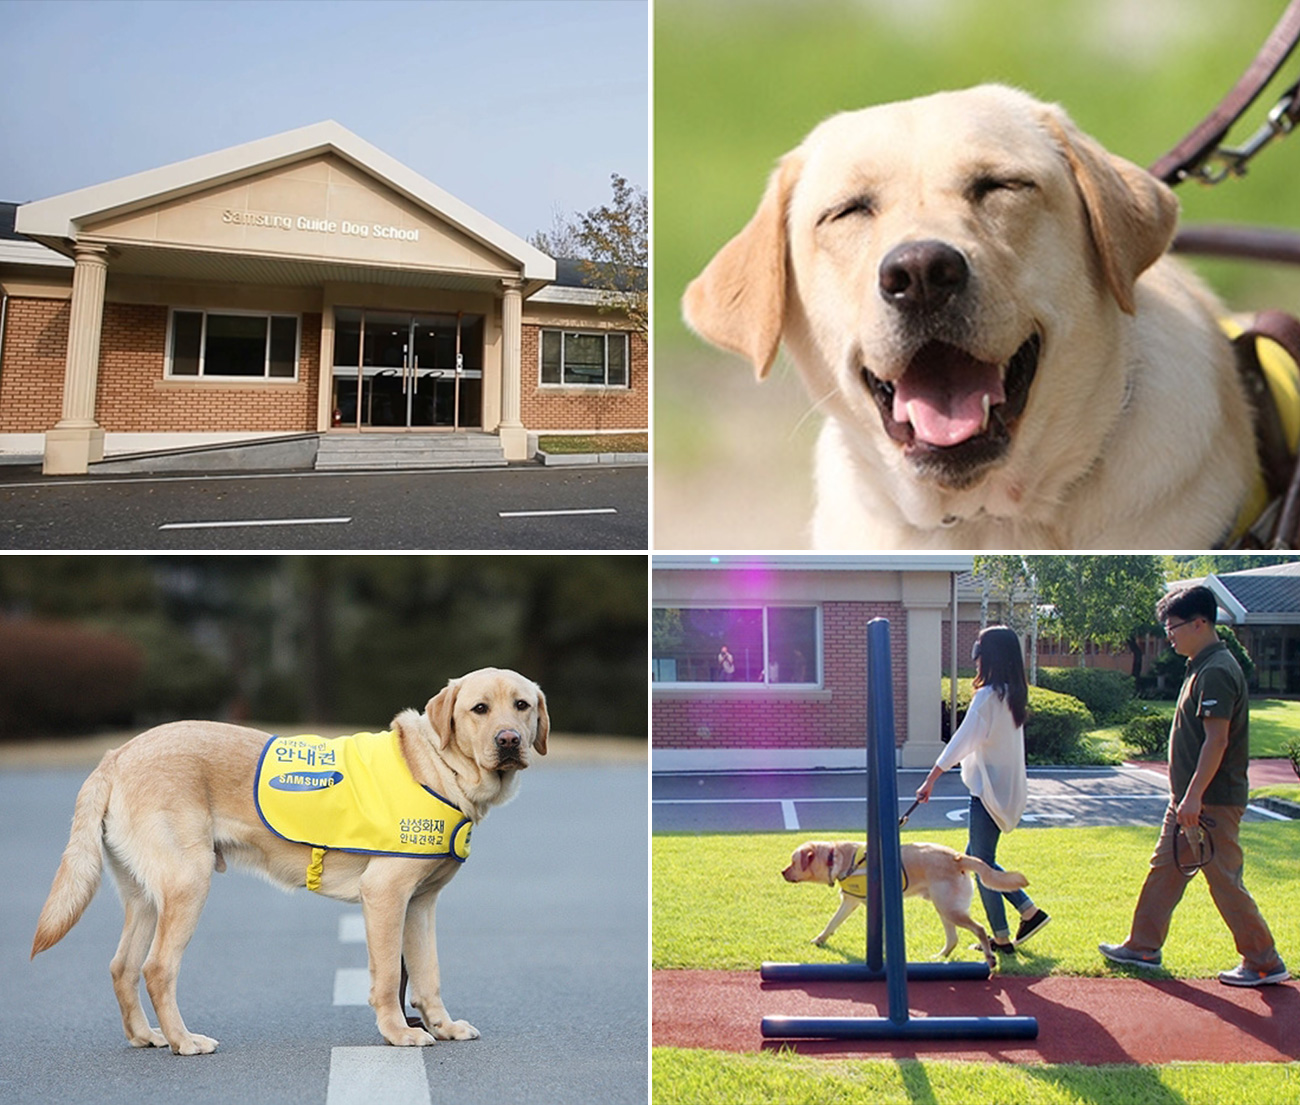 List of guide dog schools - Wikipedia